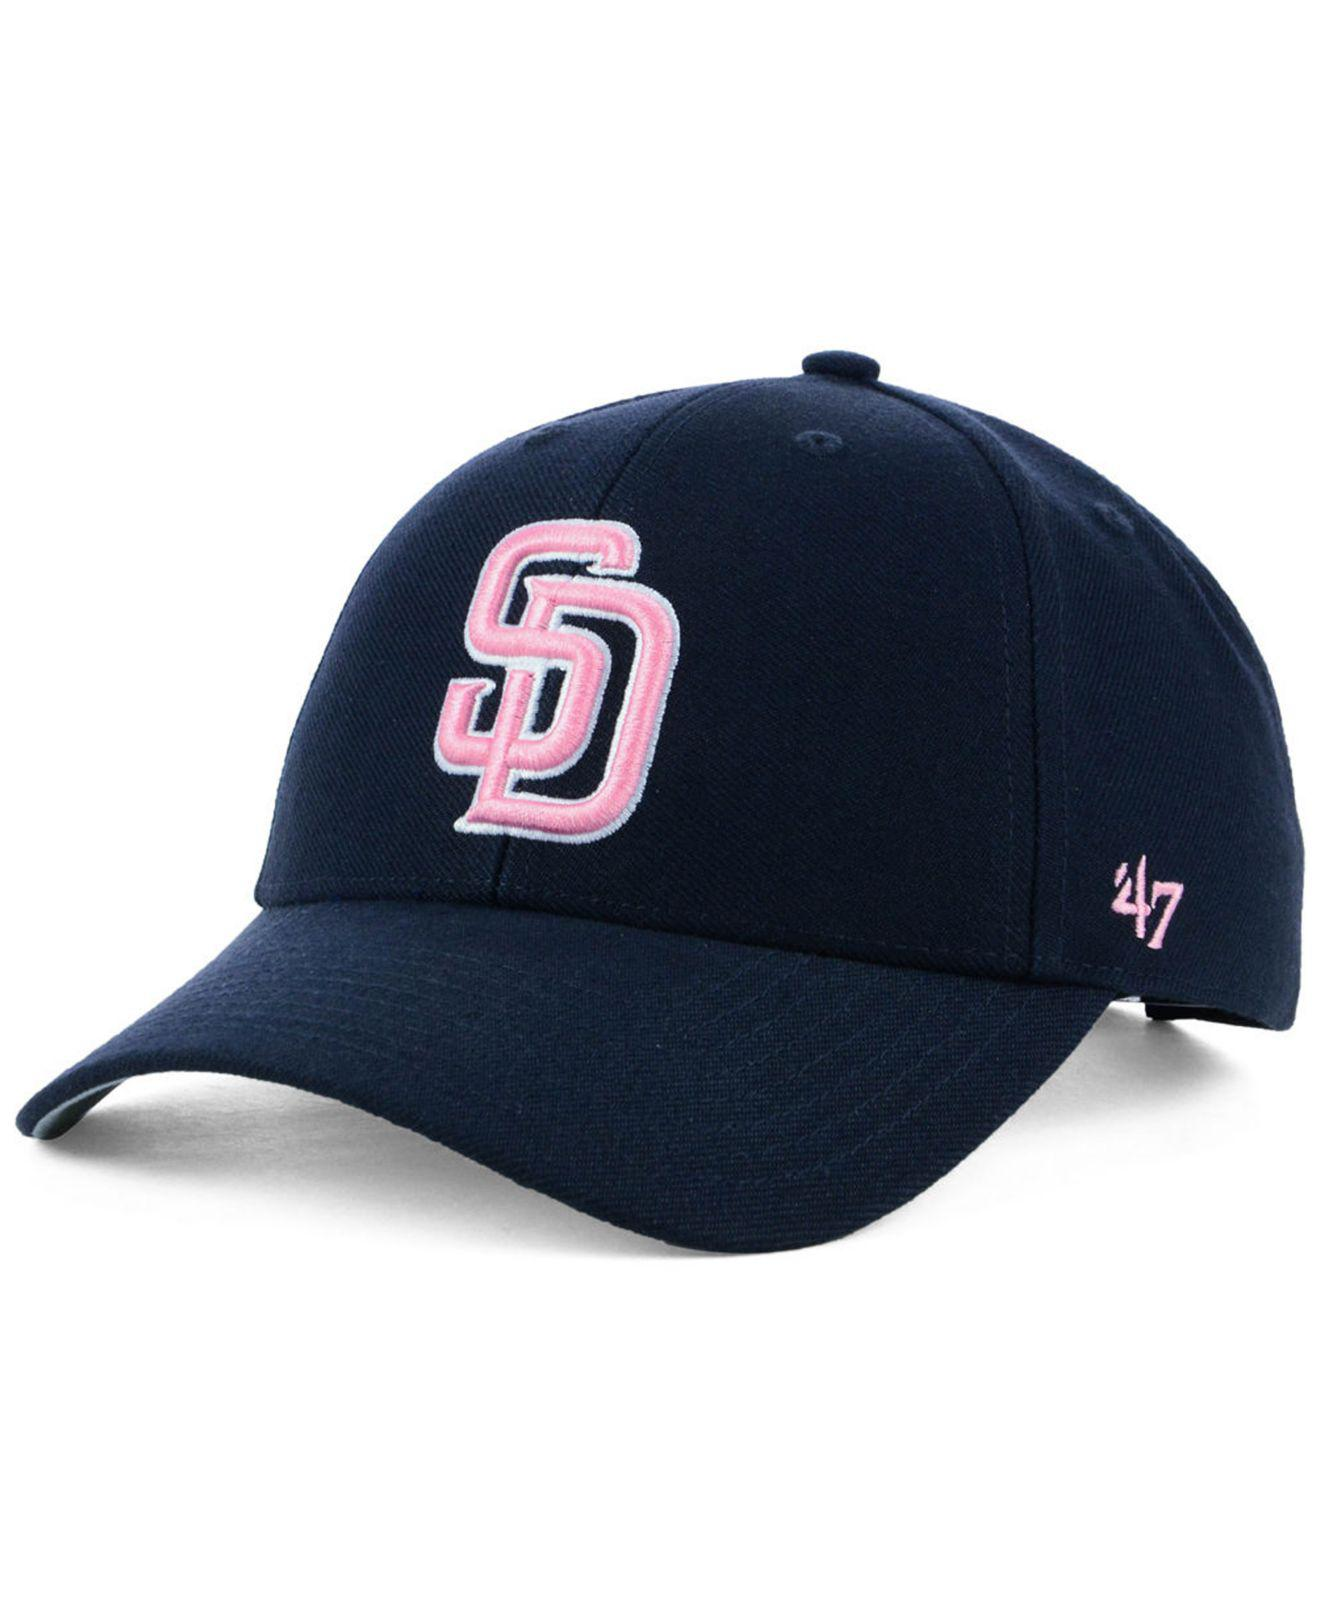 37f6fcd97 ... where can i buy 47 brand. mens blue san diego padres navy pink mvp cap